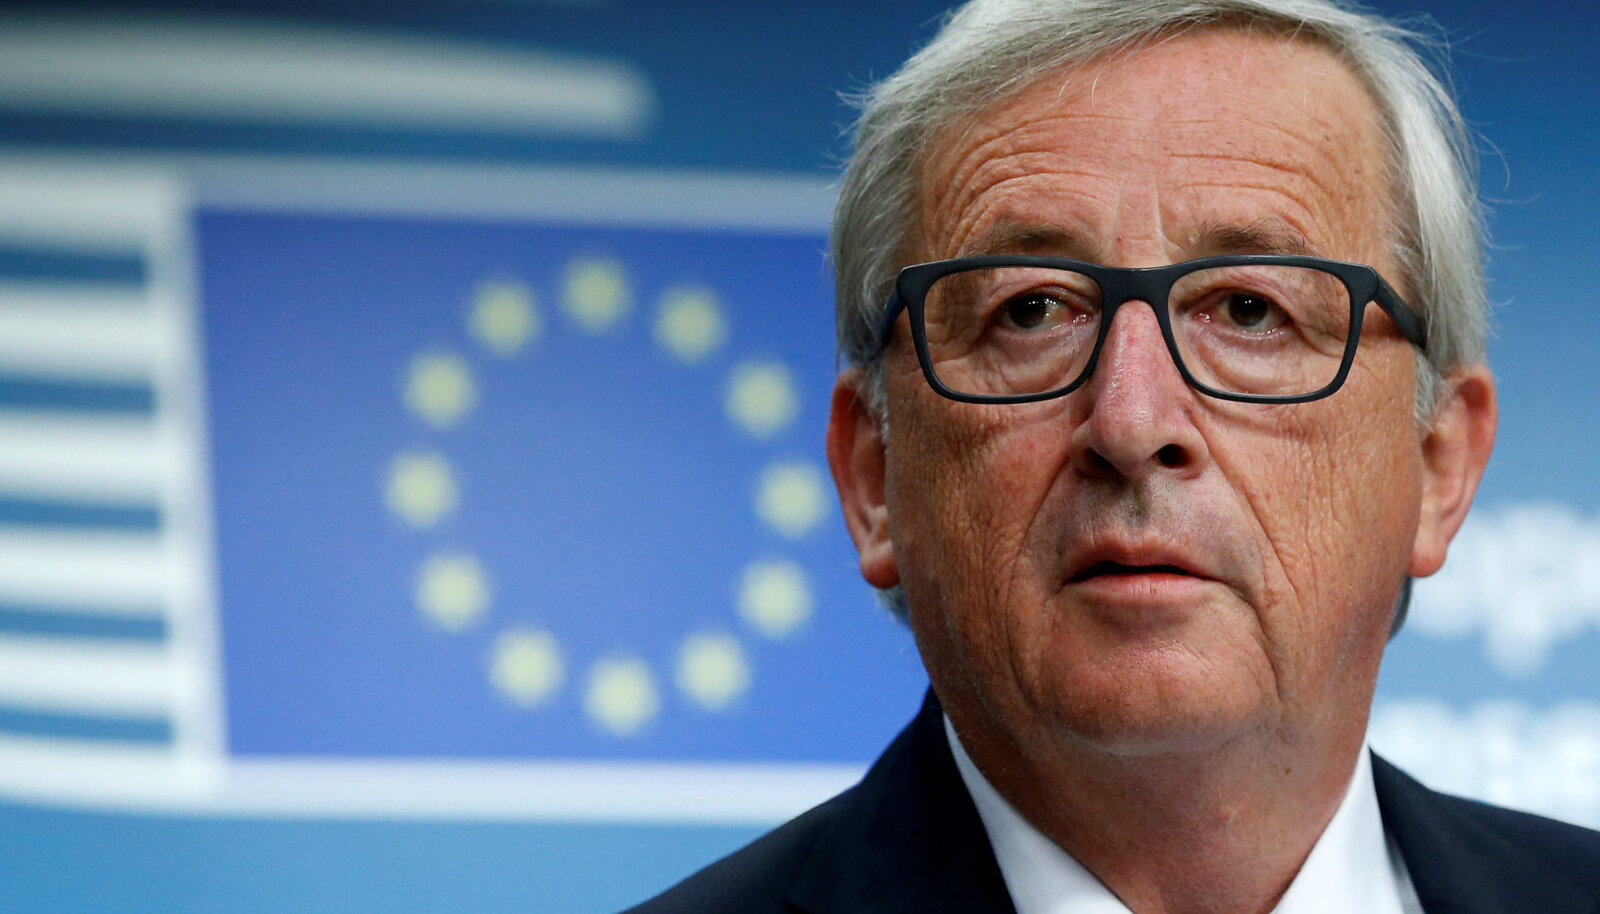 European Commission President Jean-Claude Juncker addresses a news conference during a EU leaders summit in Brussels, Belgium June 22, 2017.